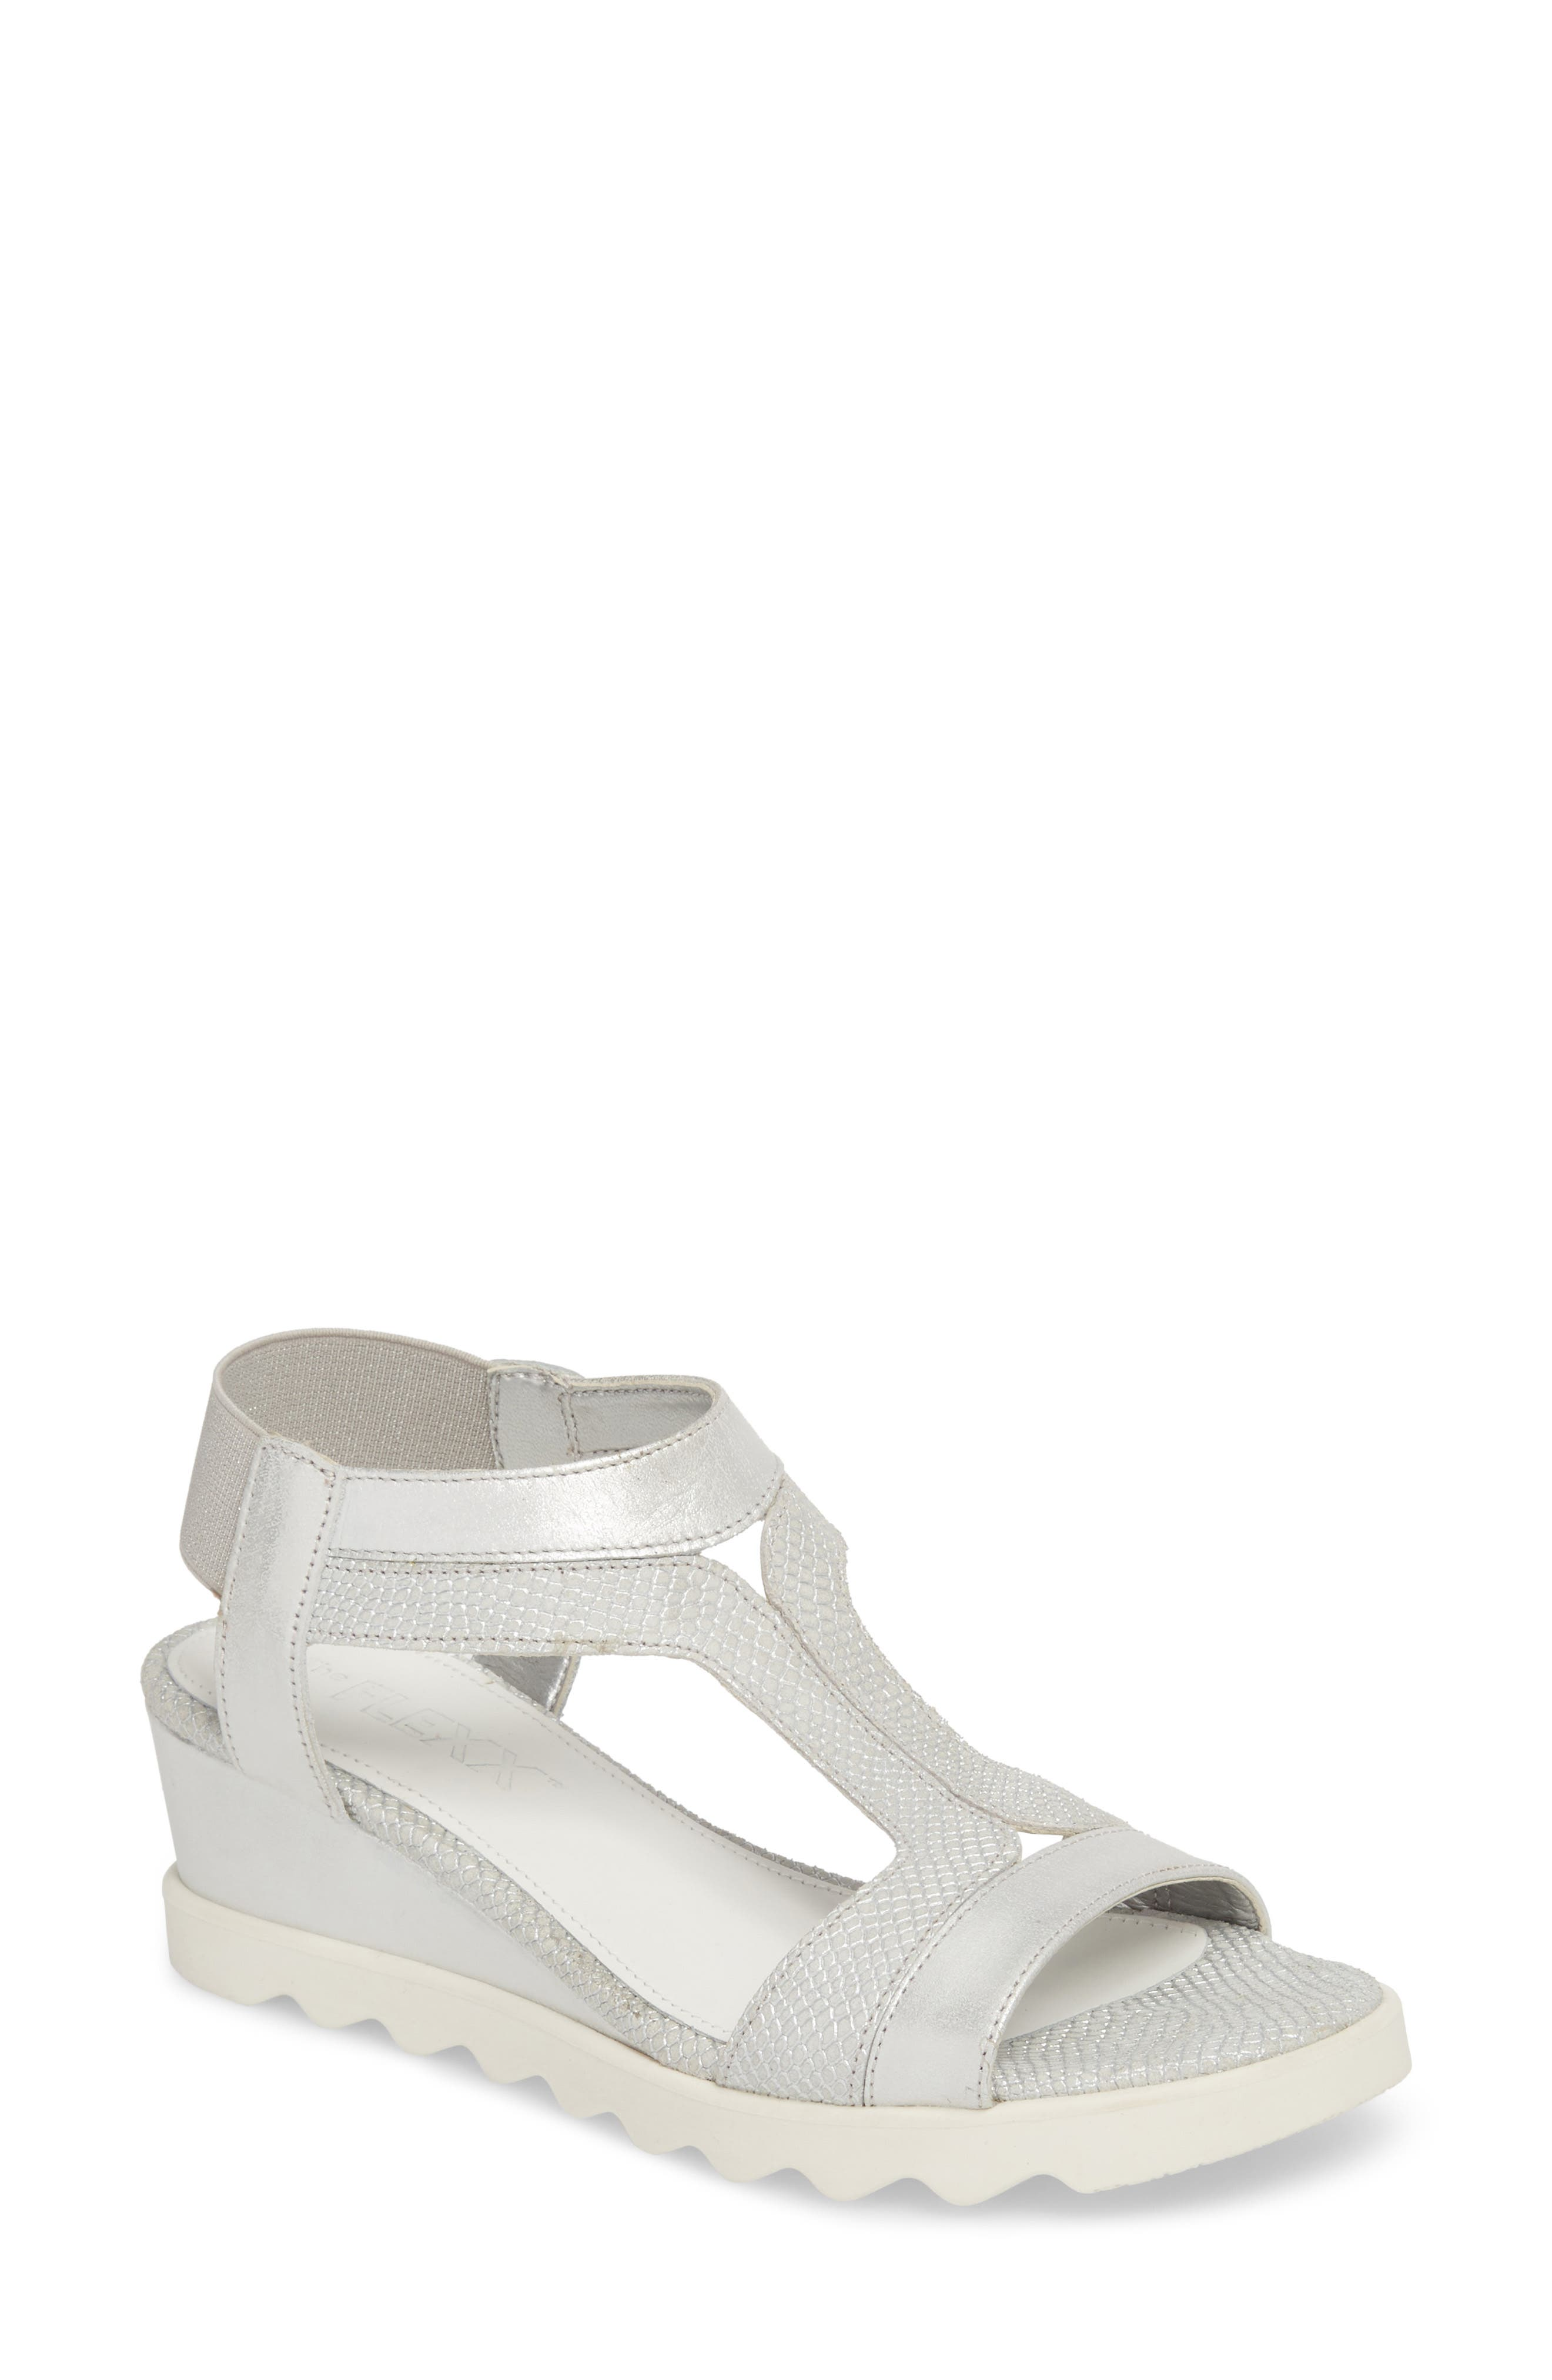 Give A Hoot Wedge Sandal,                             Main thumbnail 1, color,                             Silver Leather